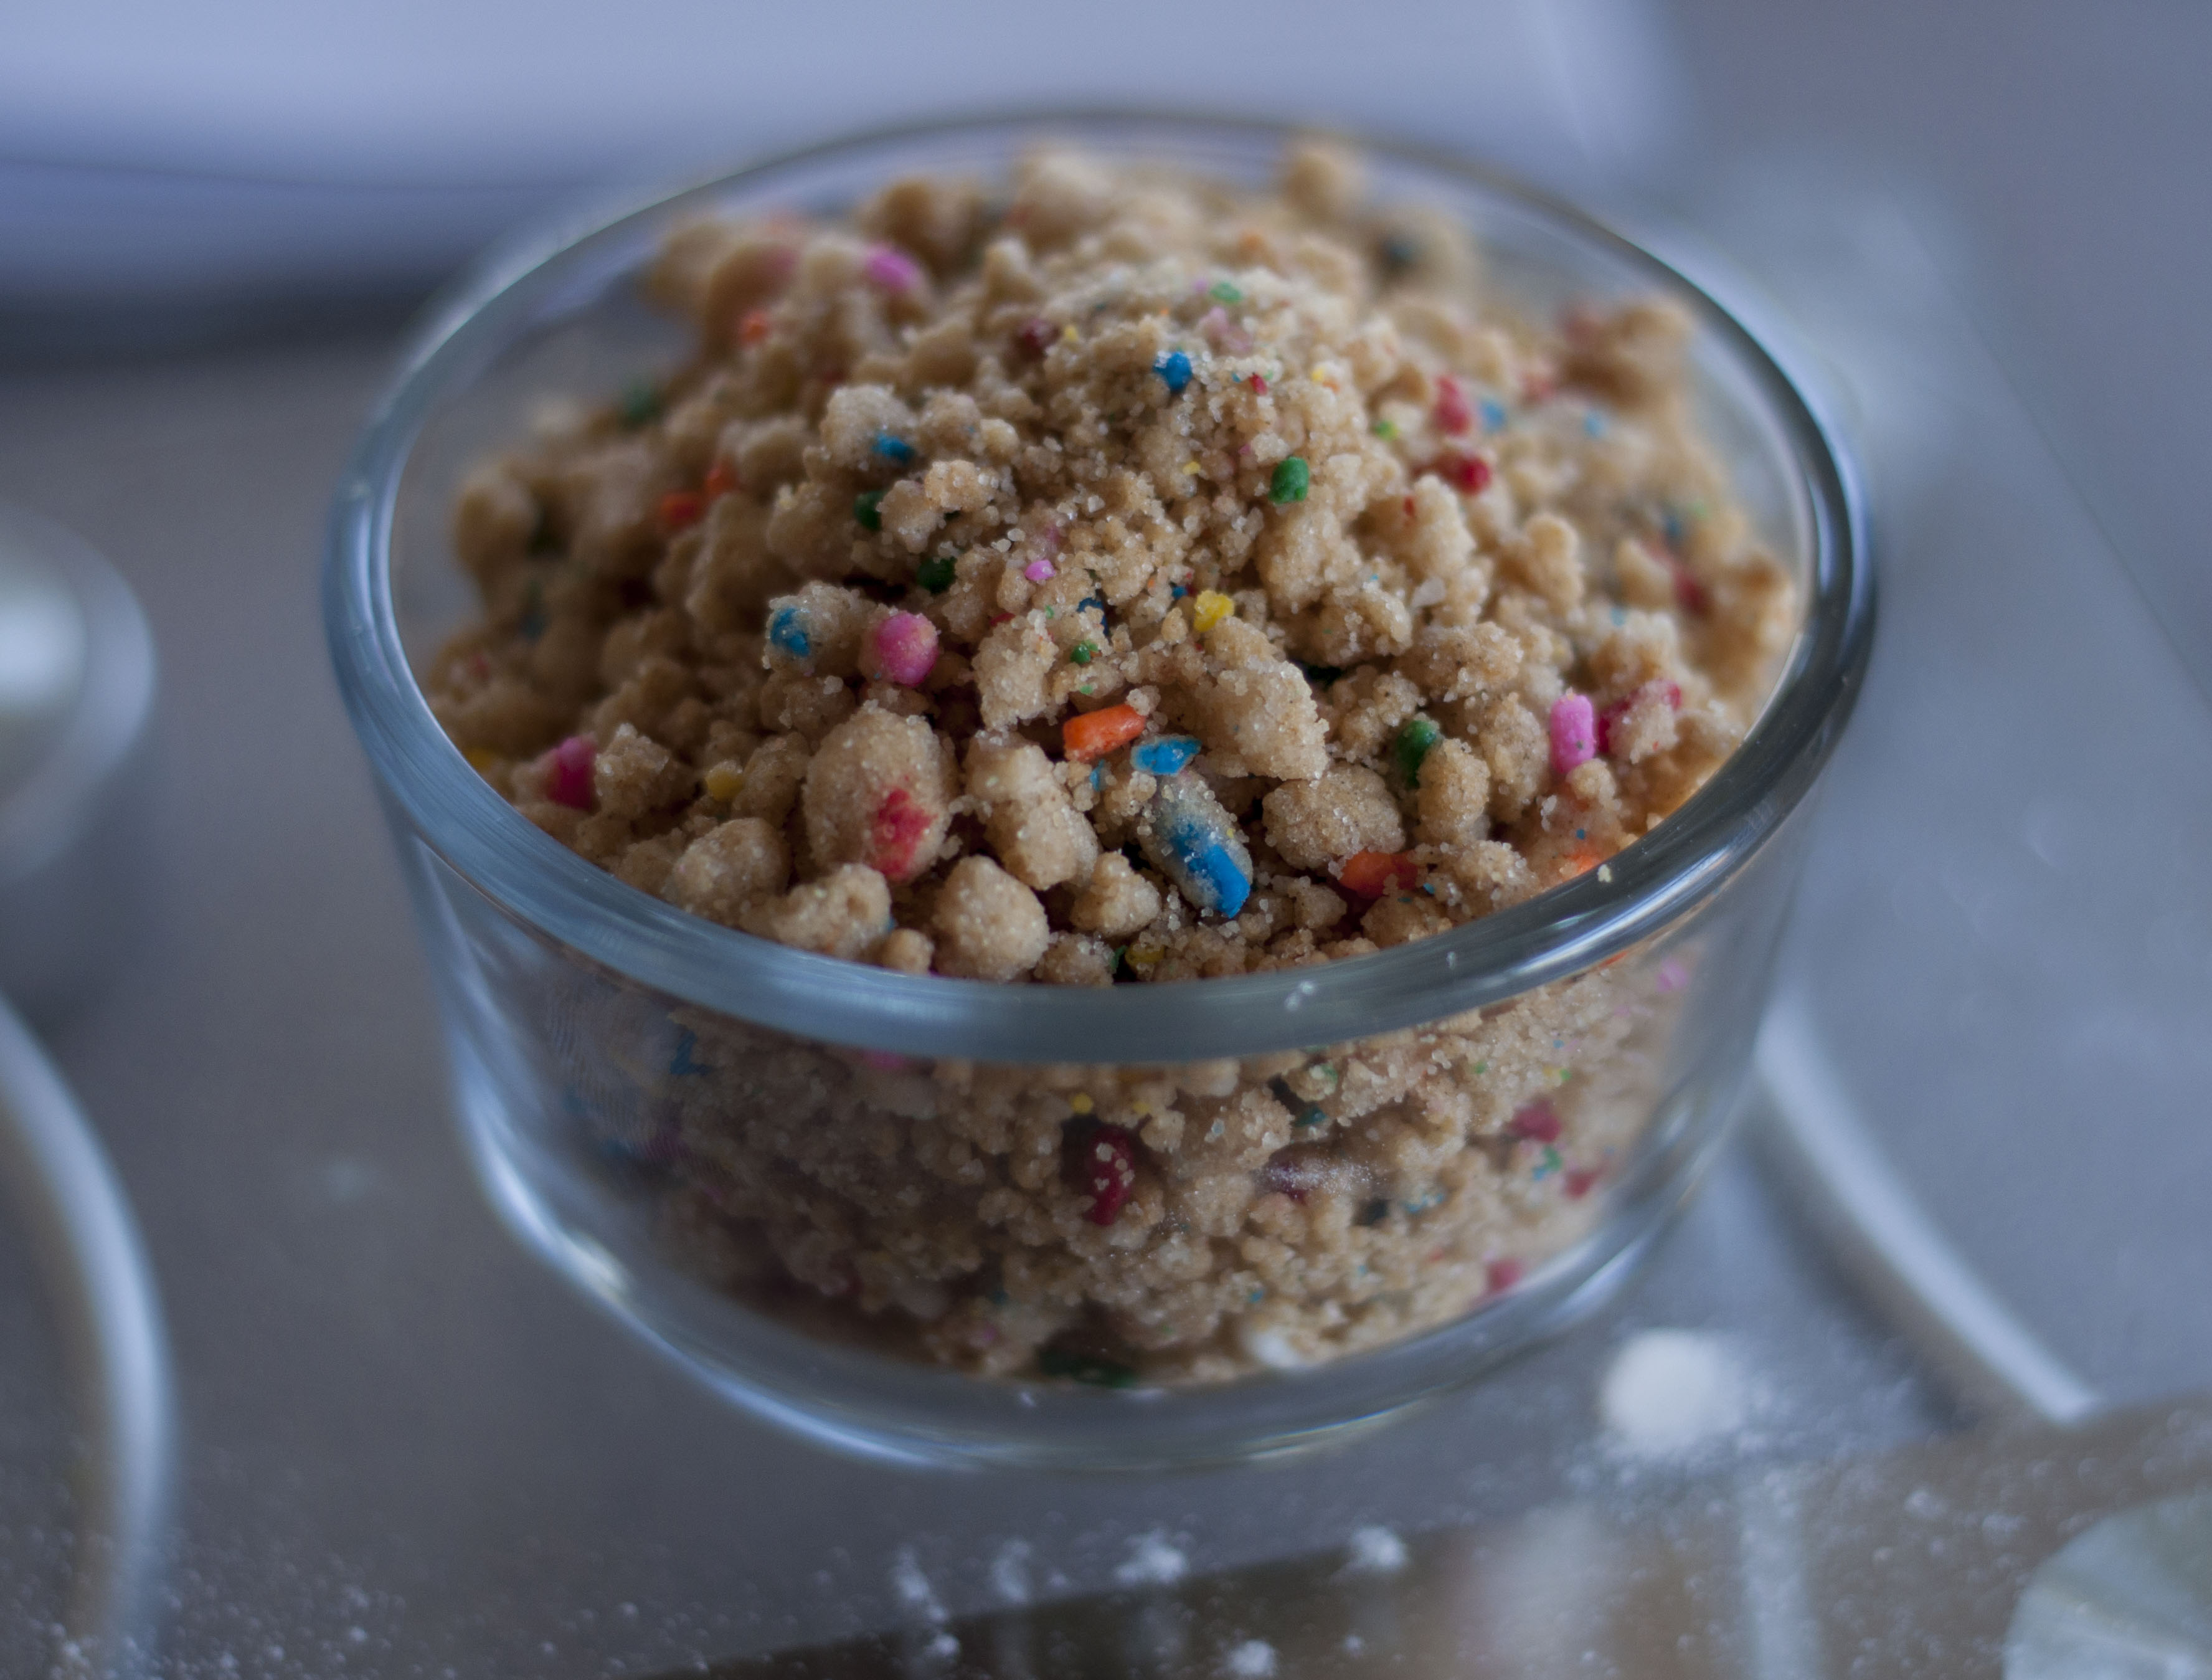 A Bowl Of Birthday Cake Crumbs